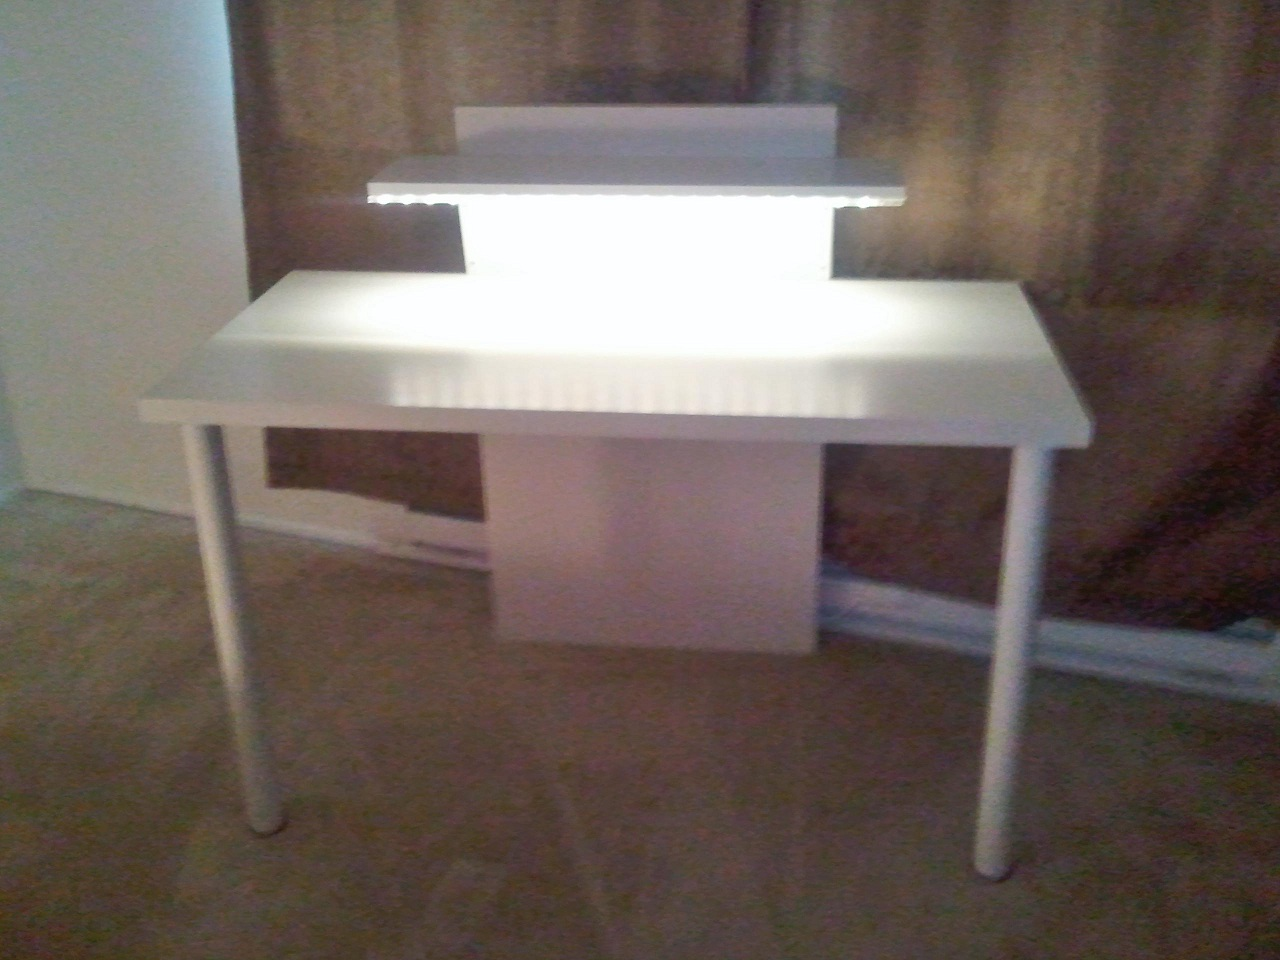 ikea computer desks small. trifecta computer desk ikea desks small t